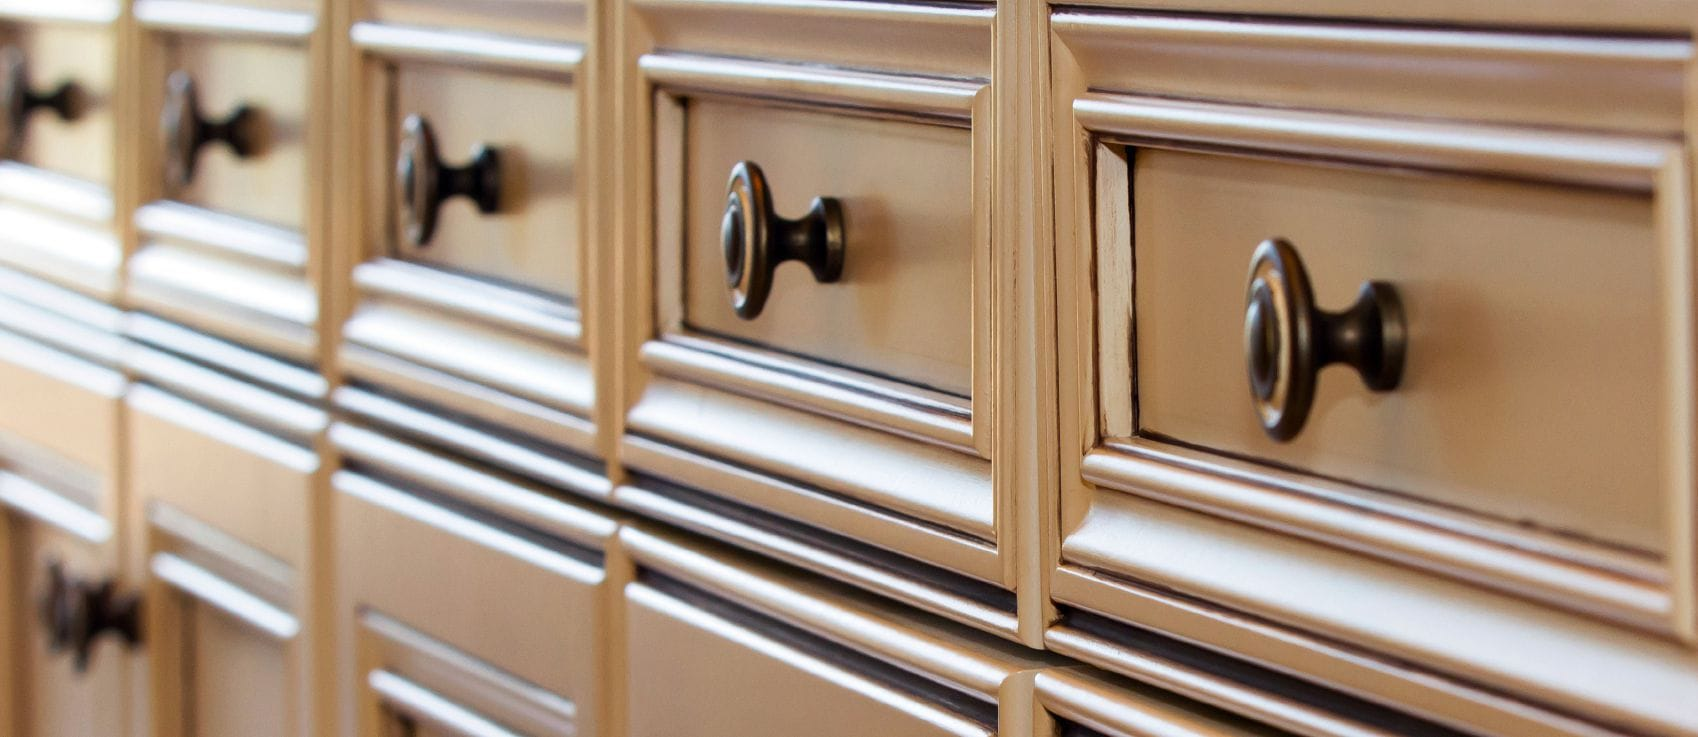 spotlight on cabinet knobs pulls and handles kitchen cabinets handles Row of kitchen cabinet drawer fronts